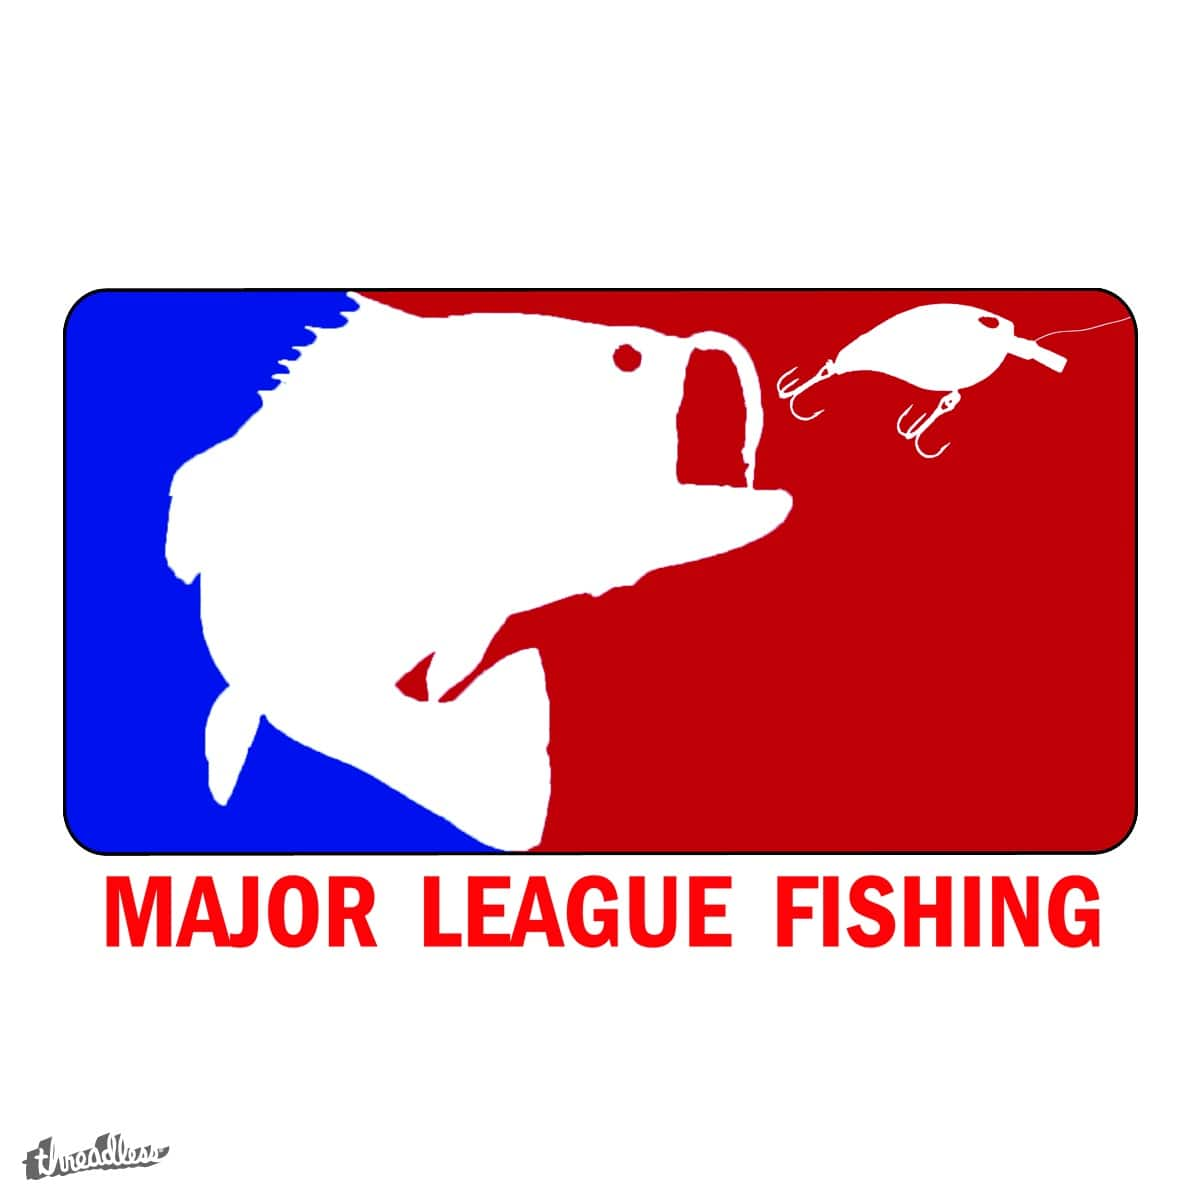 Score major league fishing by pargmandesigns on threadless for Major league fishing com